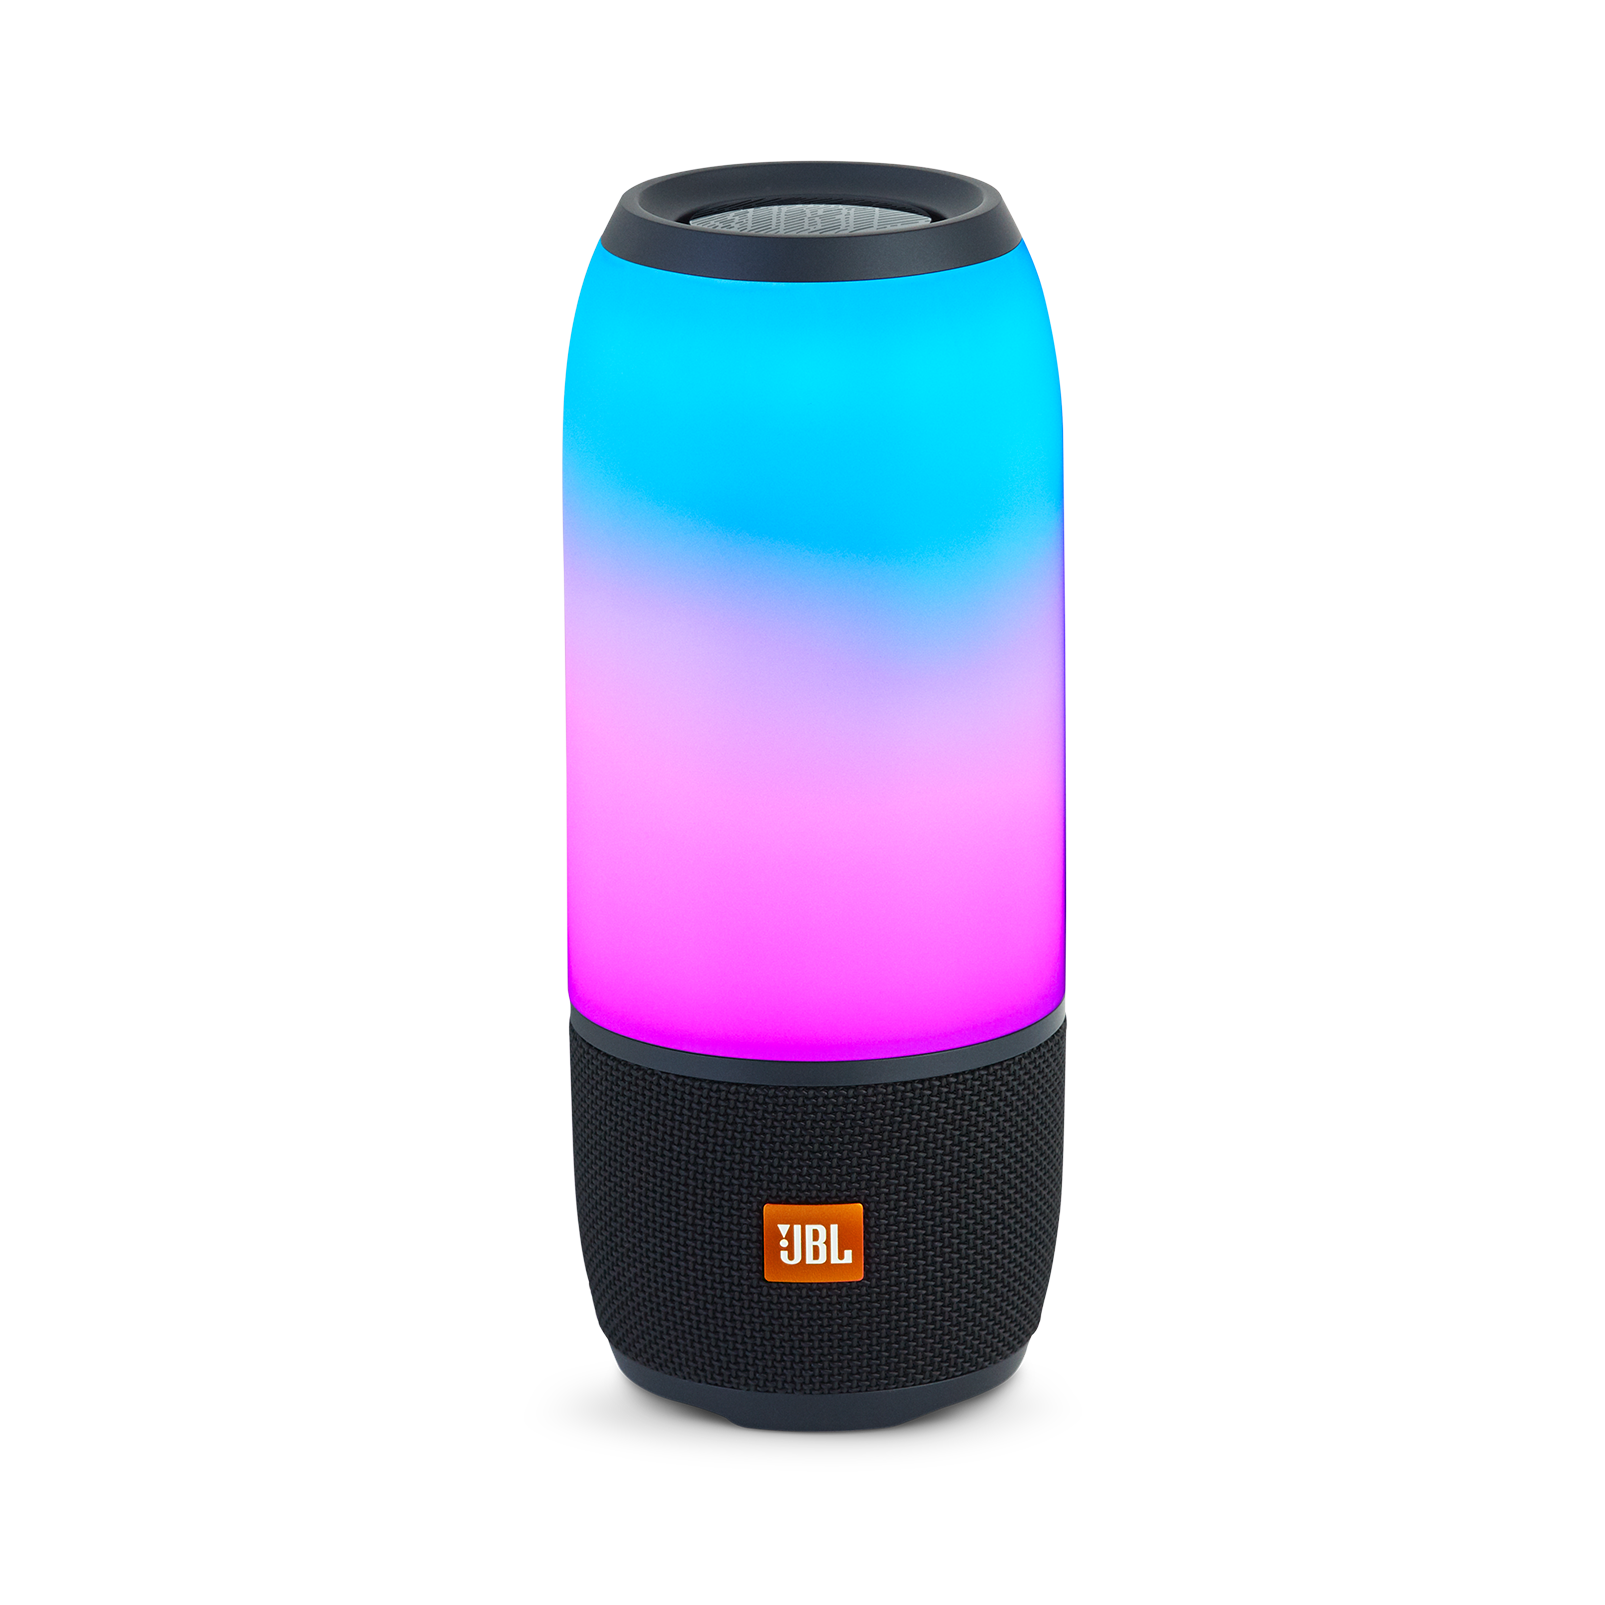 Pulse 3 - Black - Waterproof portable Bluetooth speaker with 360° lightshow and sound. - Hero